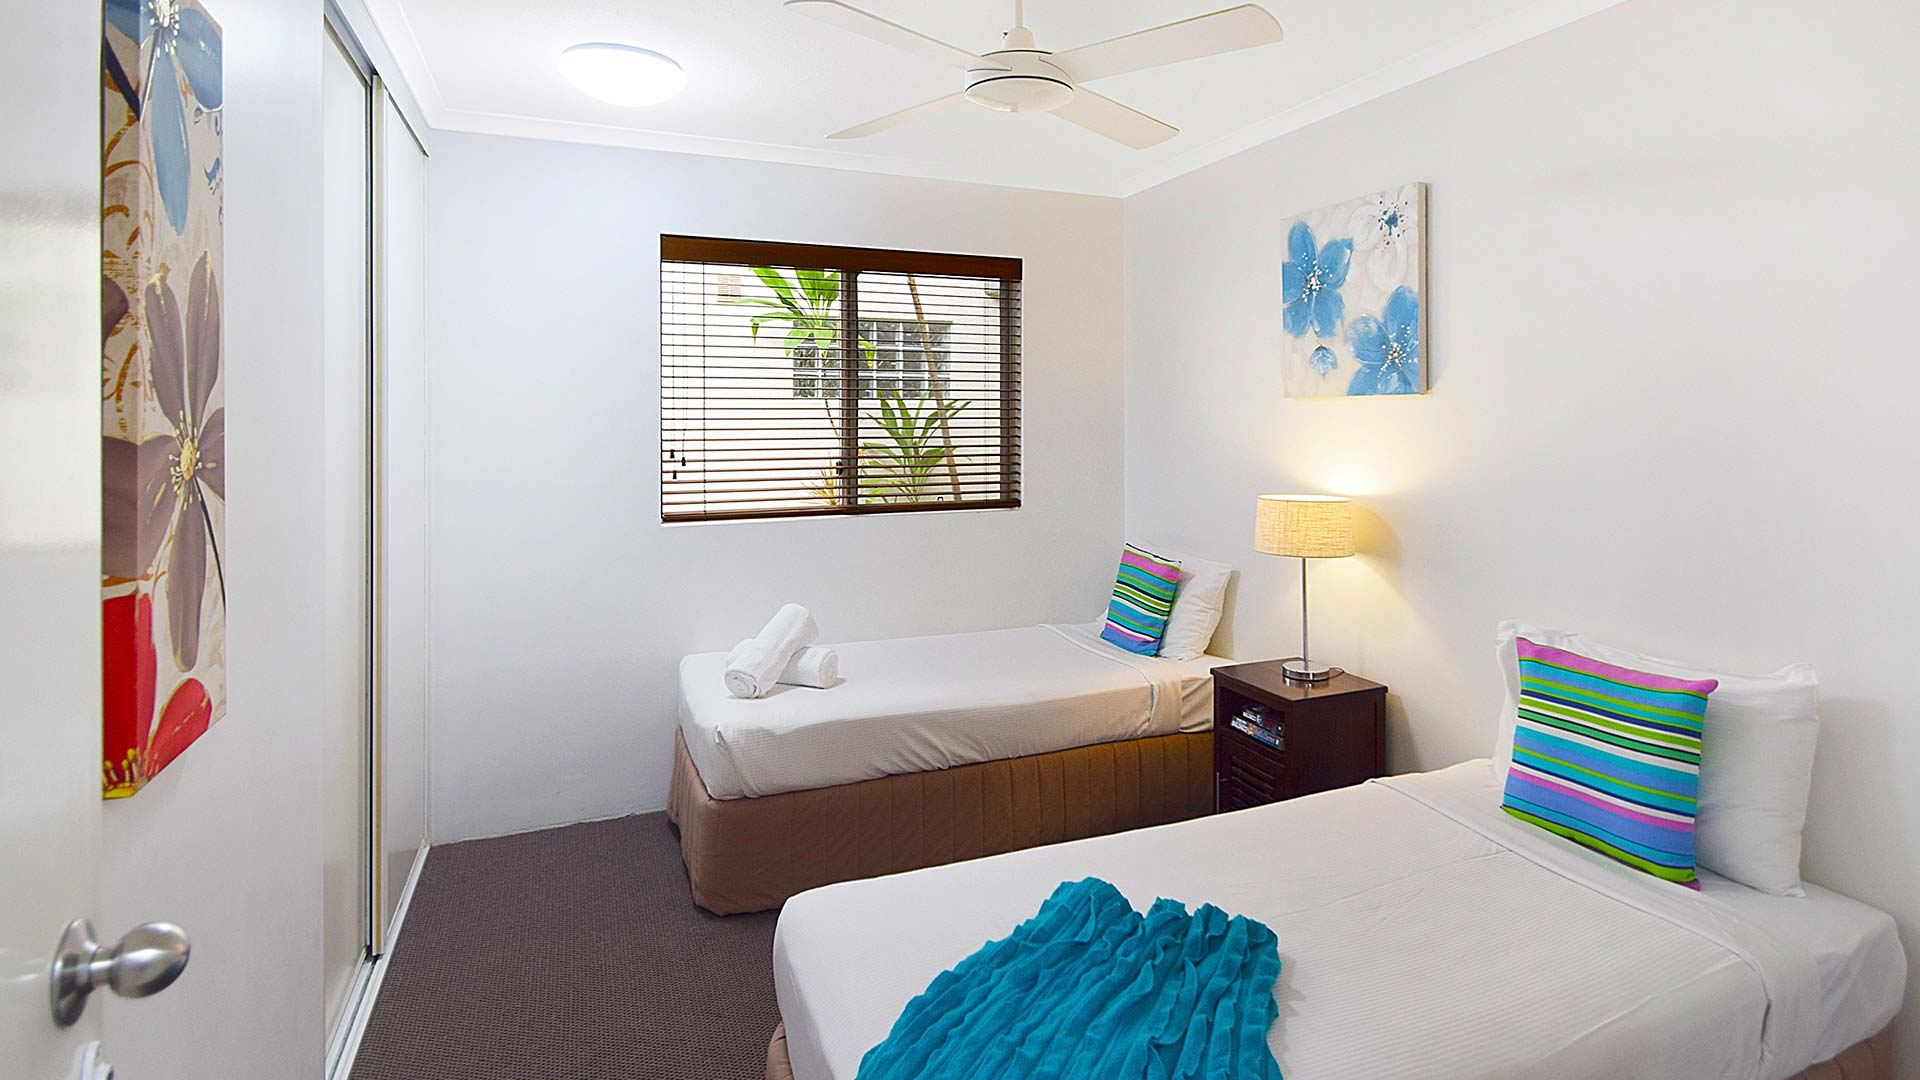 Sscr u4 bed 2 sunset cove resort for Beds 4 u ottery